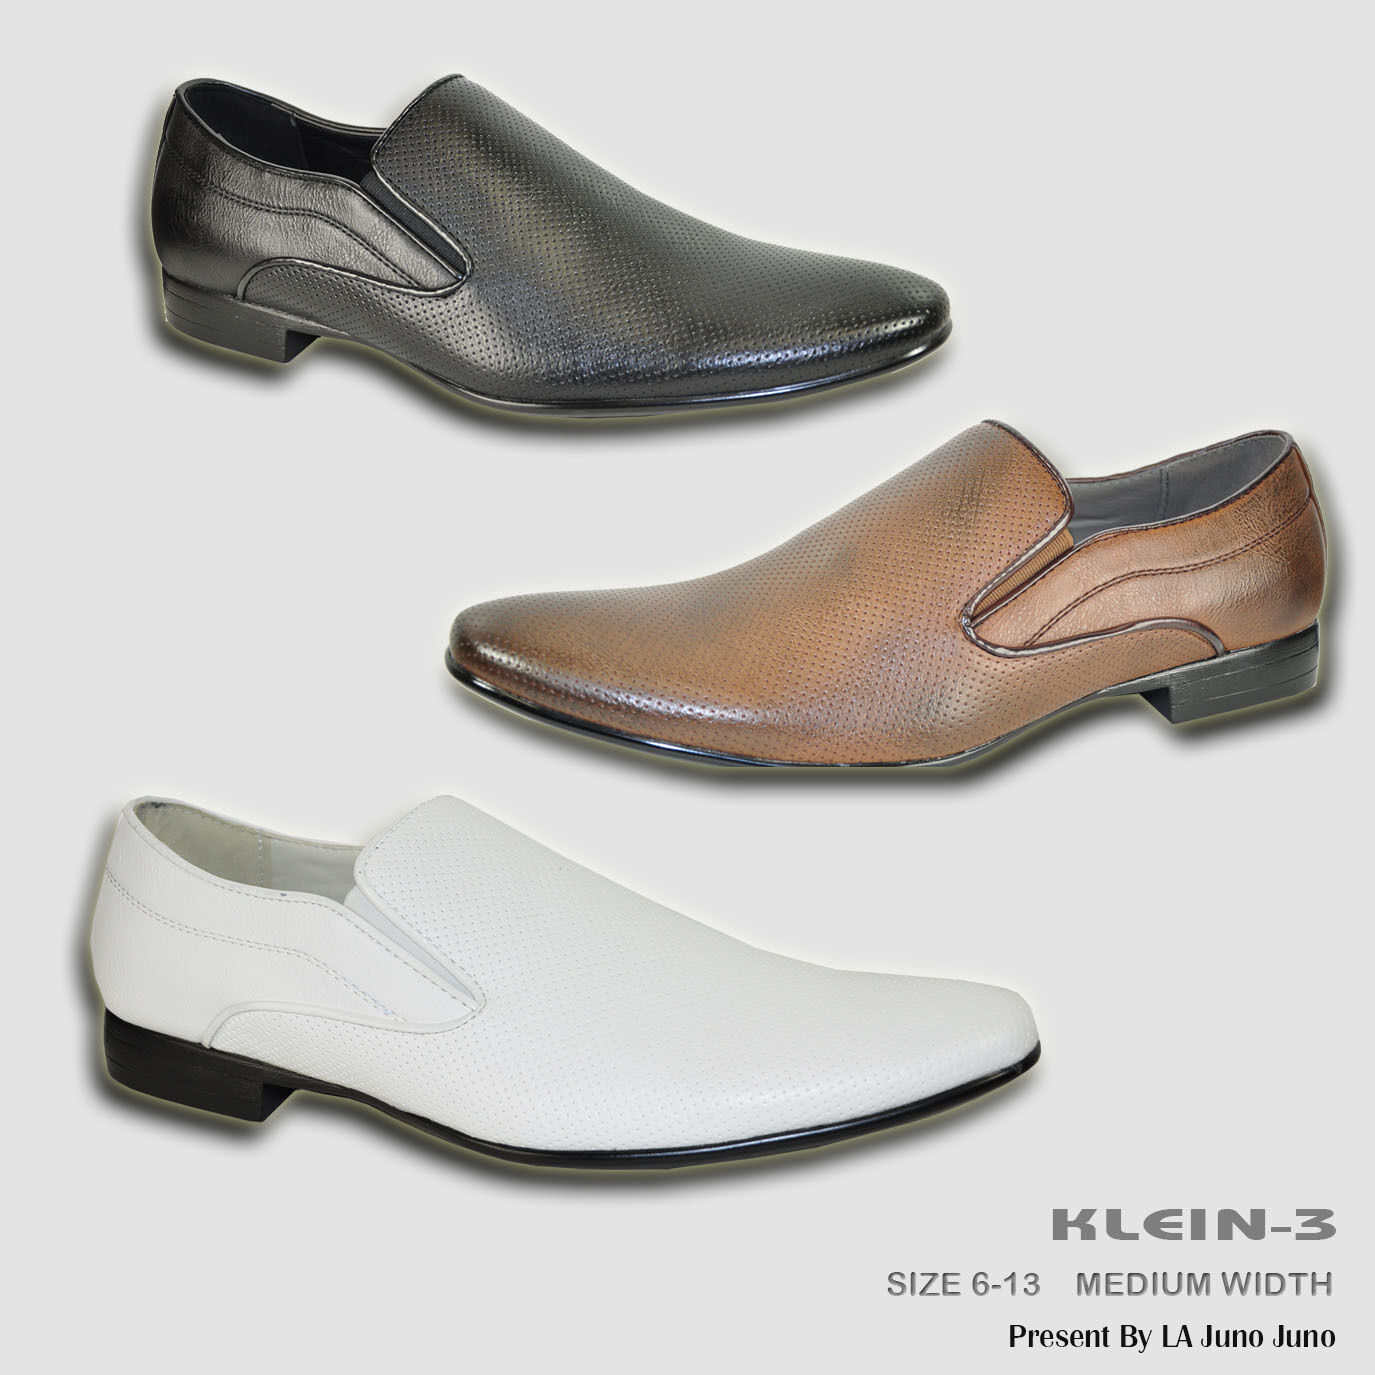 BRAVO New Men Dress Shoes KLEIN-3 Loafer Fashion with Plain Round Point Toe